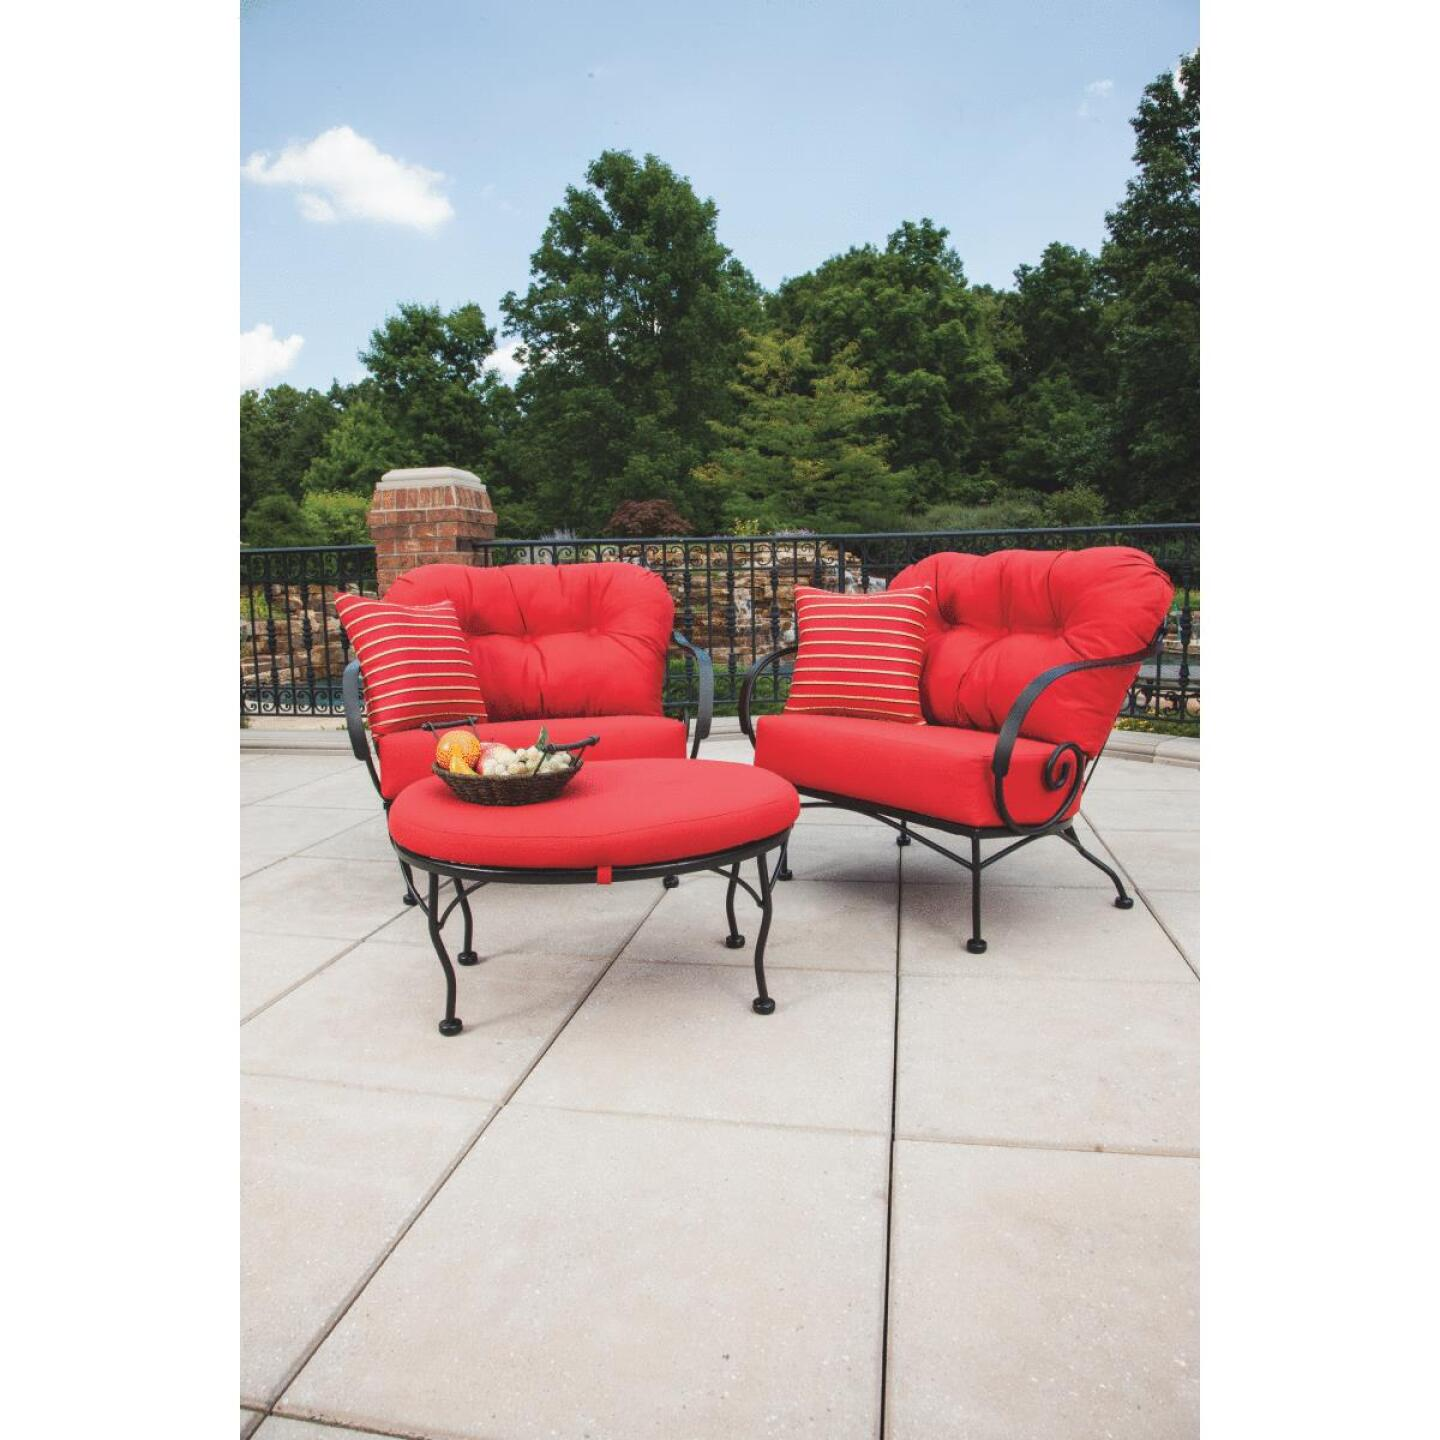 Brantley 3-Piece Steel Chat Set with Red Cushions Image 7